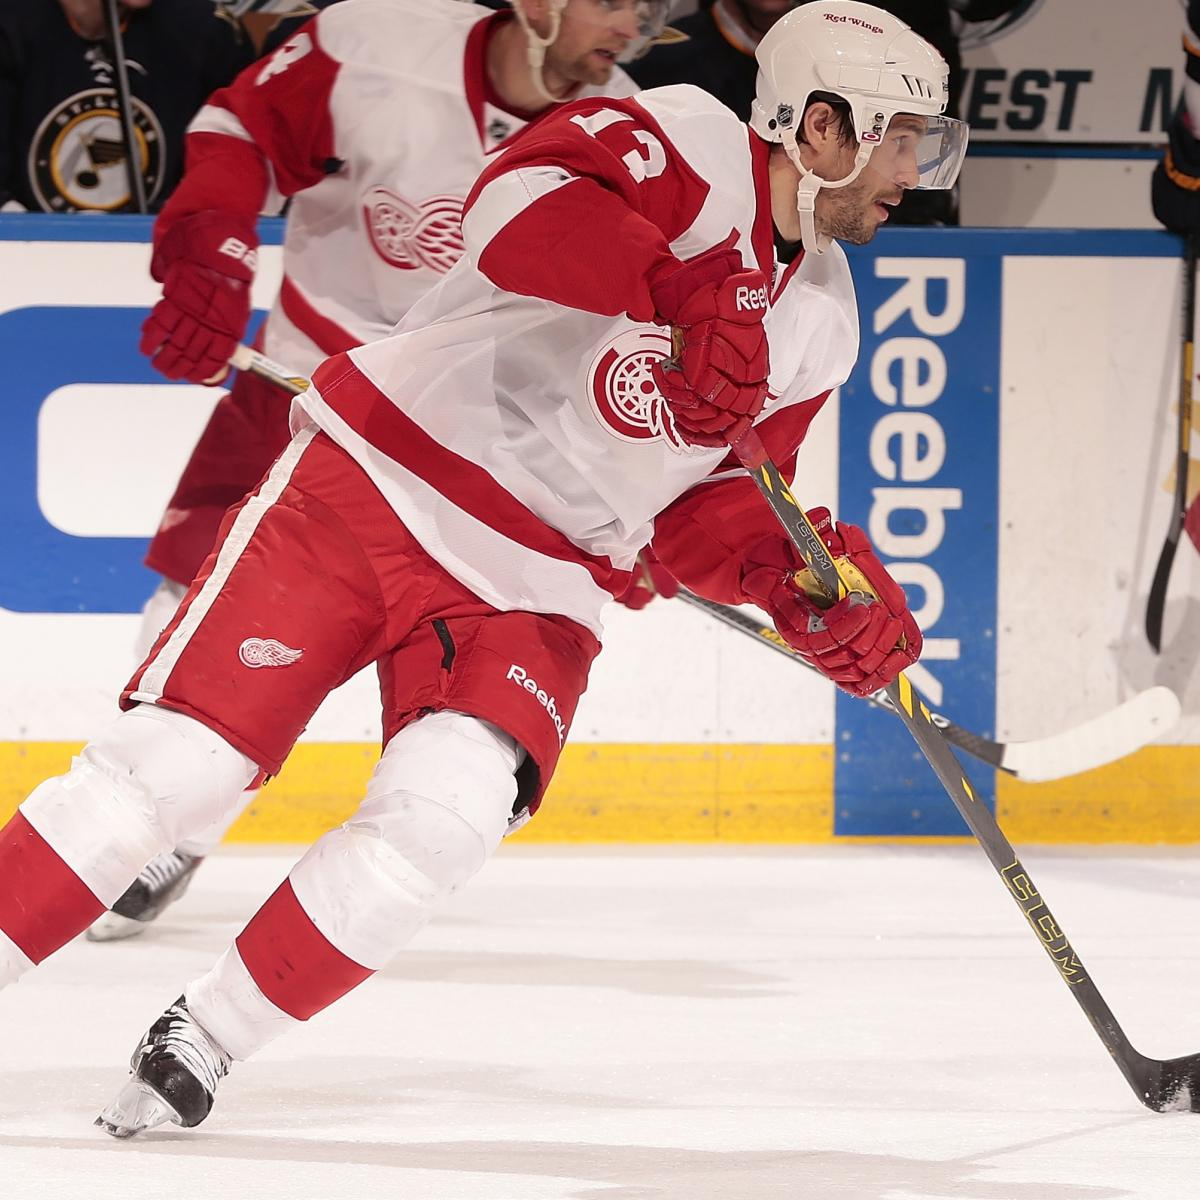 Detroit Red Wings Vs. Boston Bruins Game 1: Live Score And